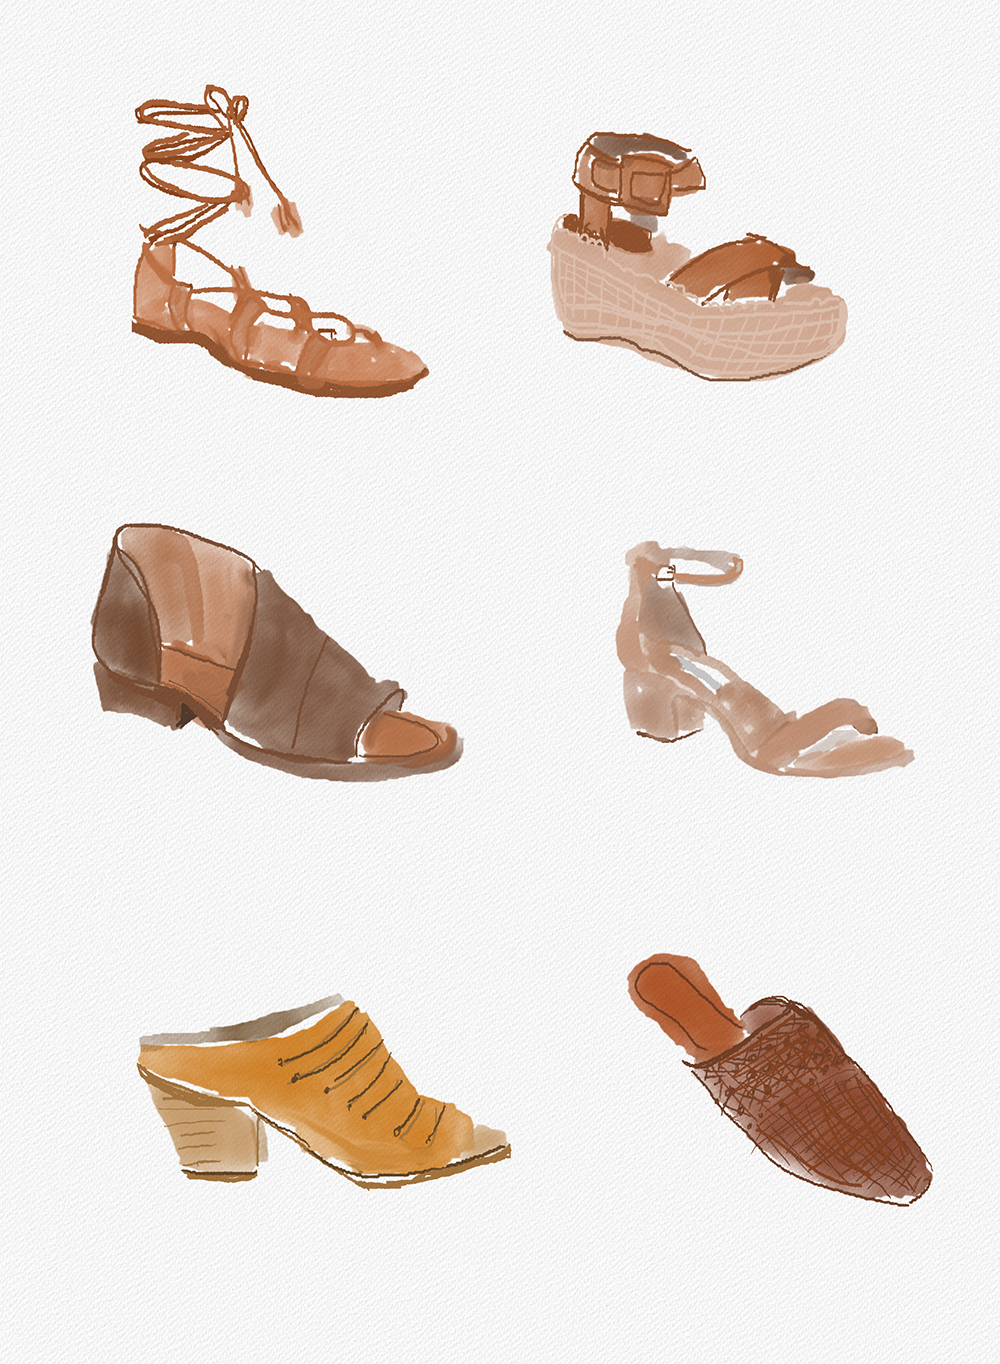 livvland-blog-olivia-watson-best-summer-sandals-any-occasion-fashion-illustration